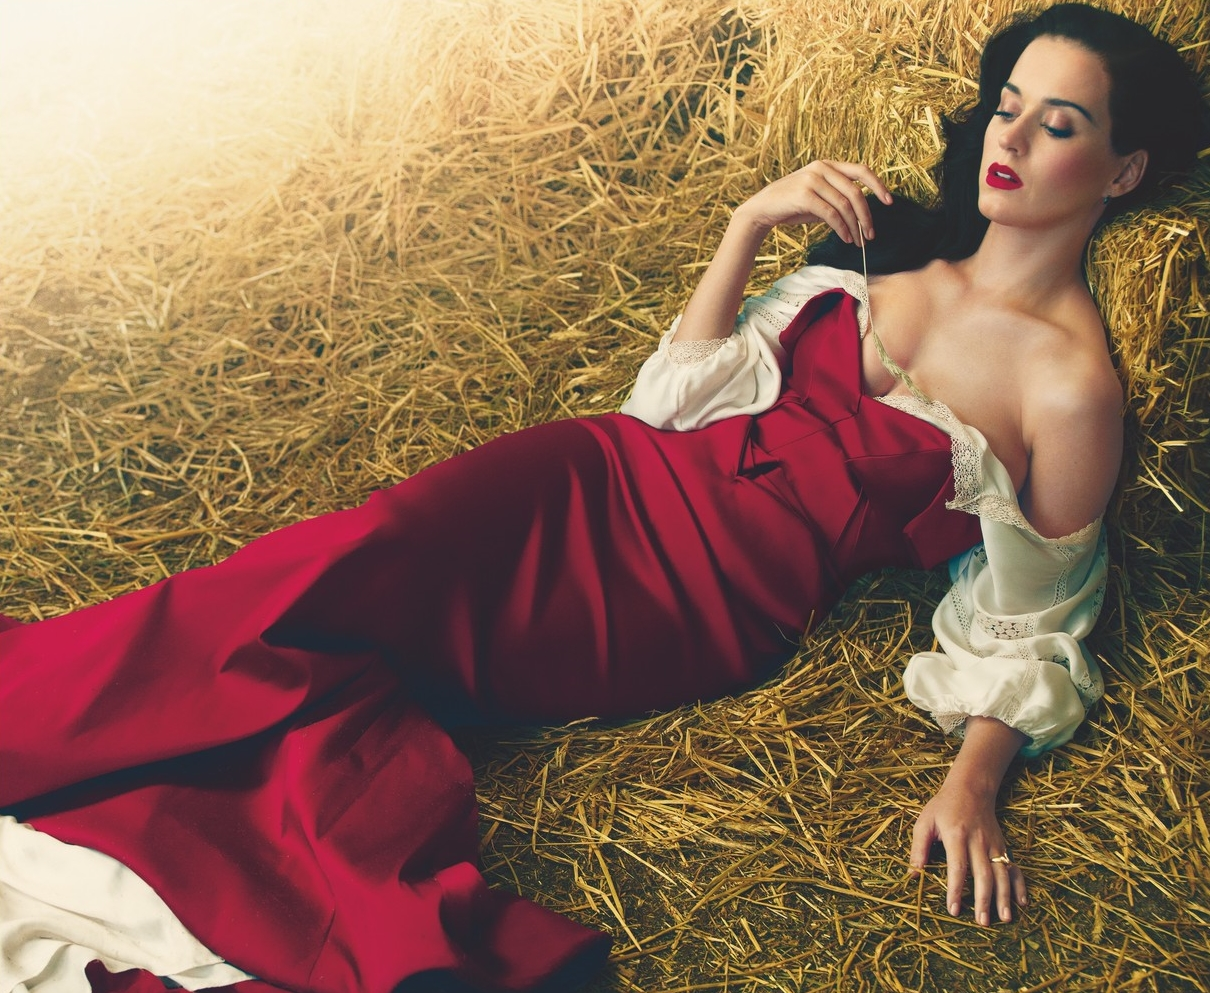 katy-perry-covers-vogue-magazine-03